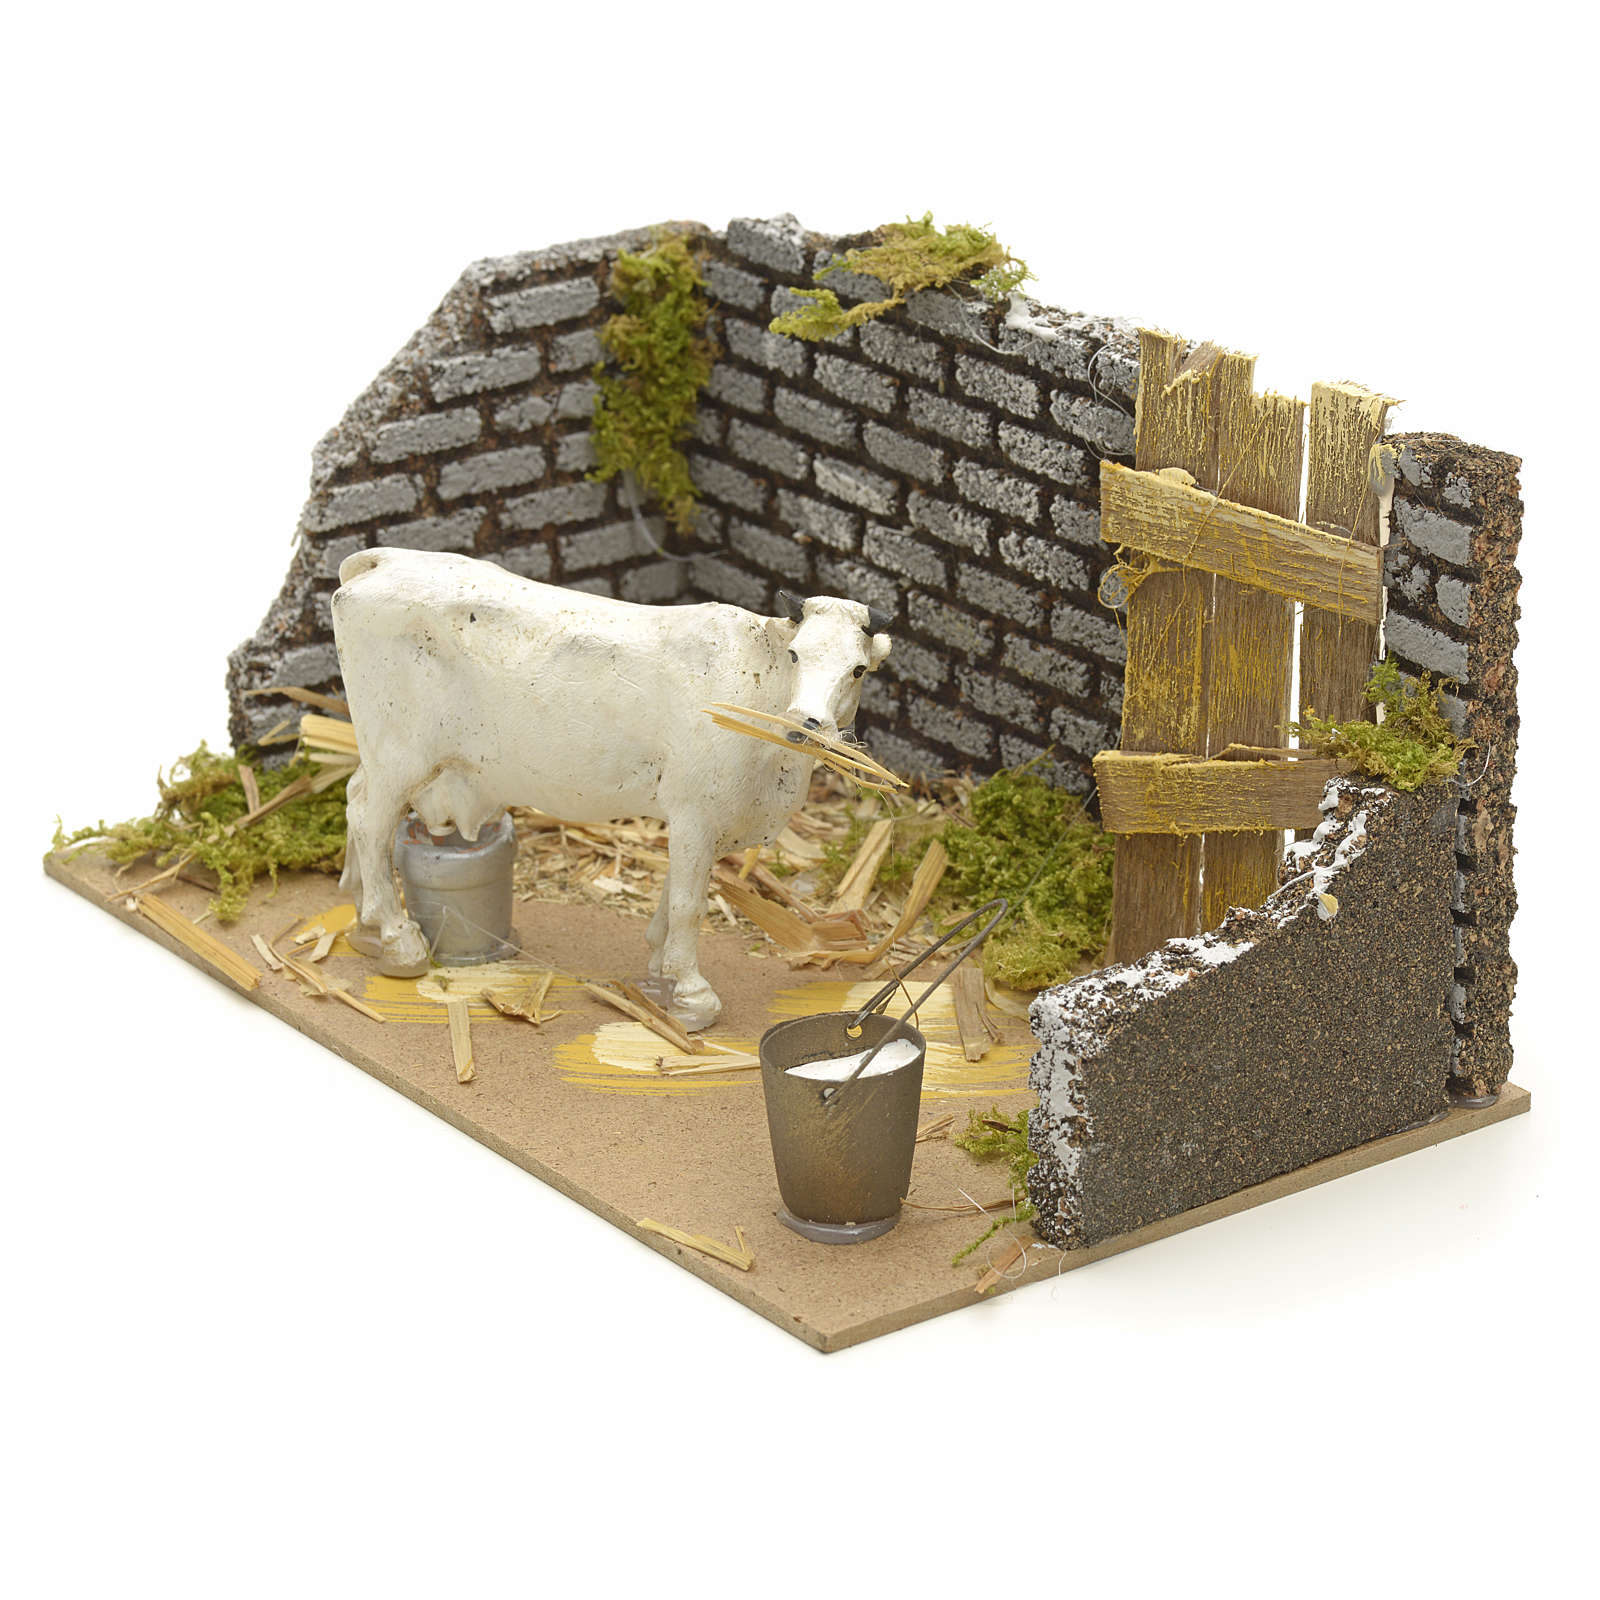 Nativity setting with cow 15x20x12cm 4